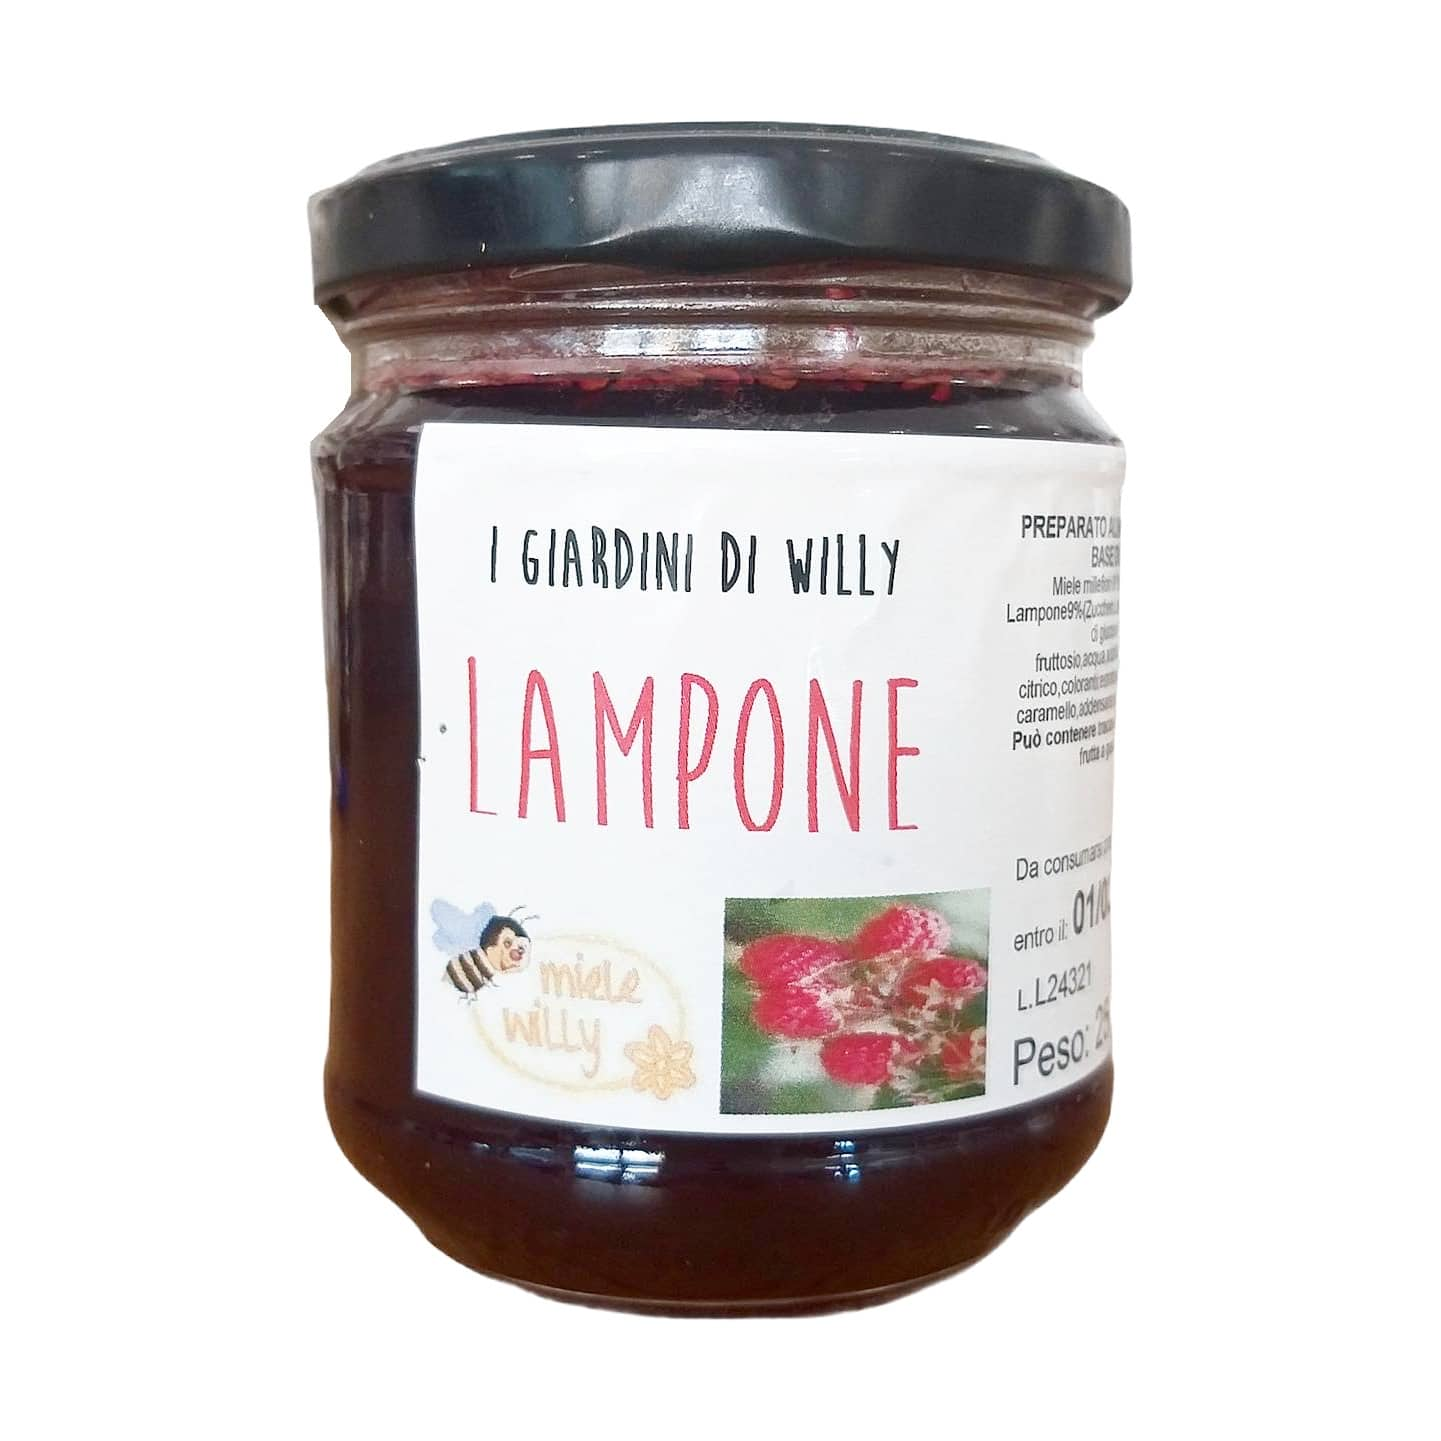 I GIARDINI DI WILLY LAMPONE 250G Miele Willy